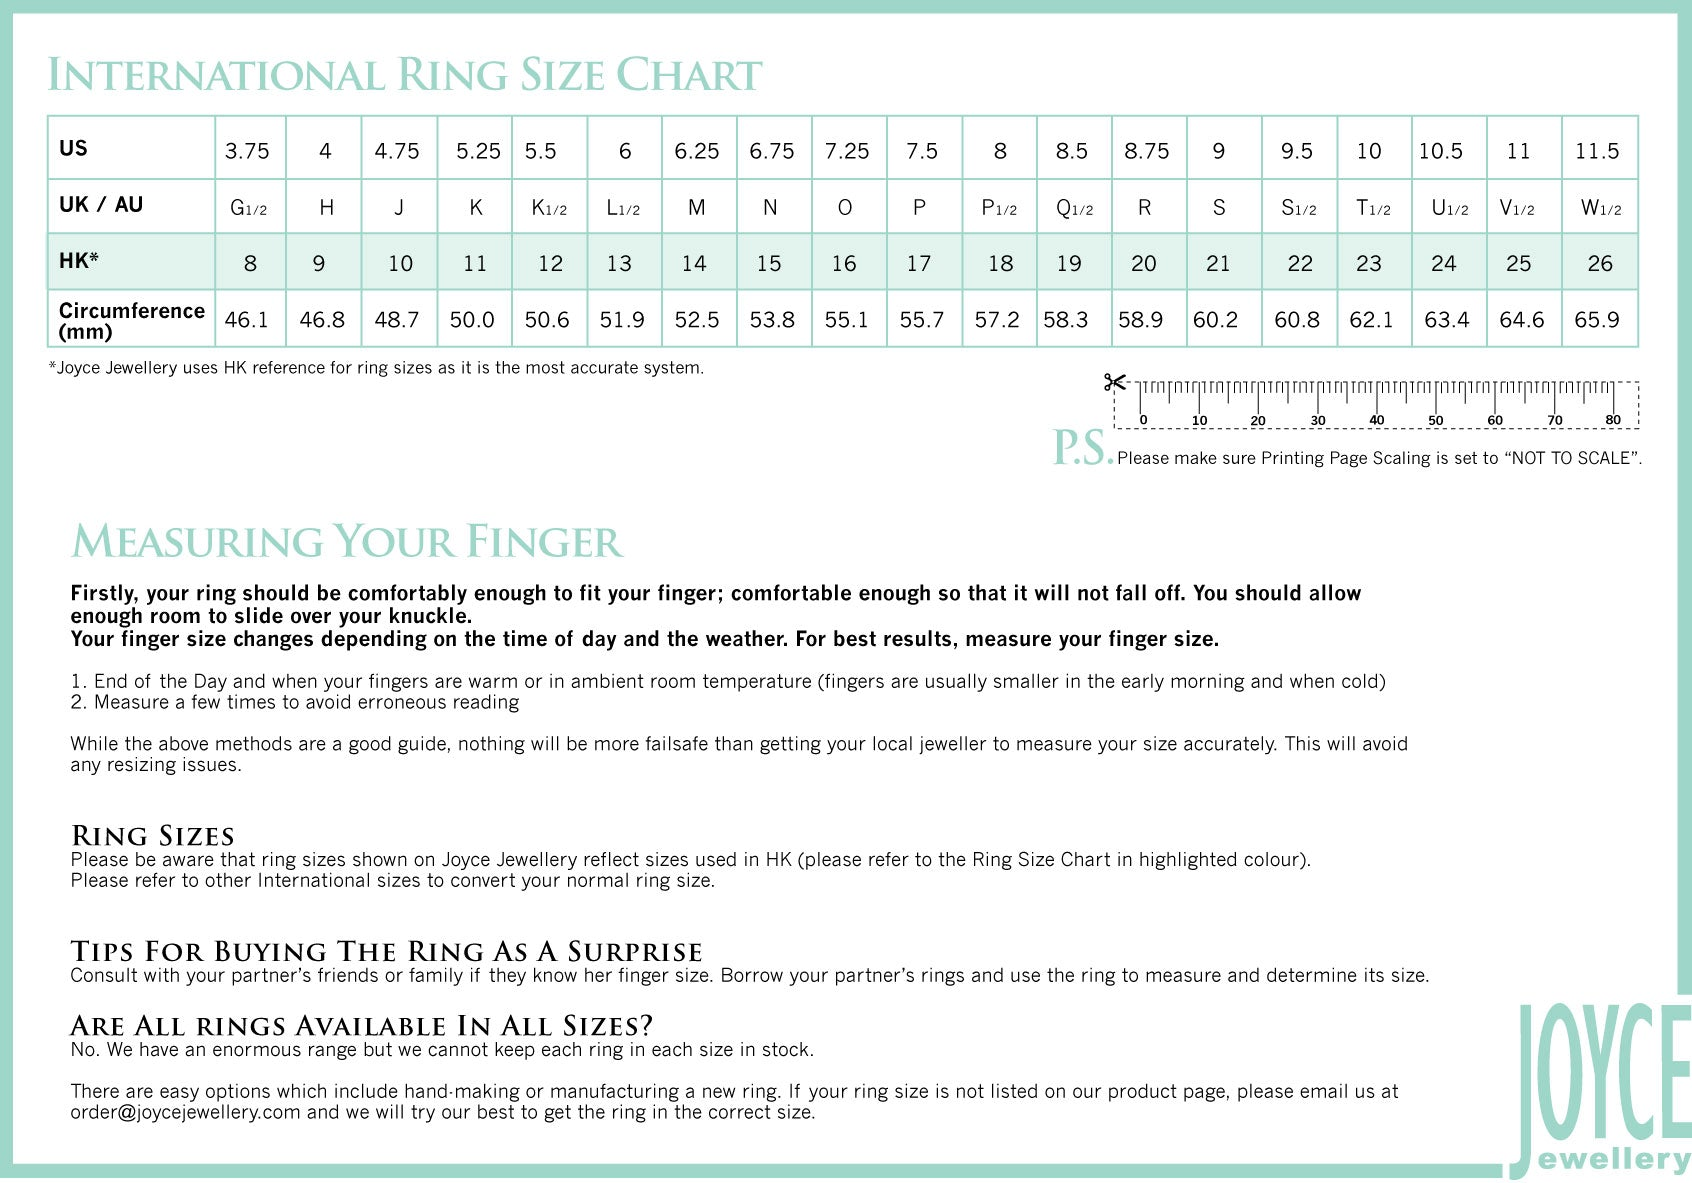 Ring chain sizing chart joyce jewellery for jewellery and watch for all in house jewellery rings please refer to the chart below geenschuldenfo Images